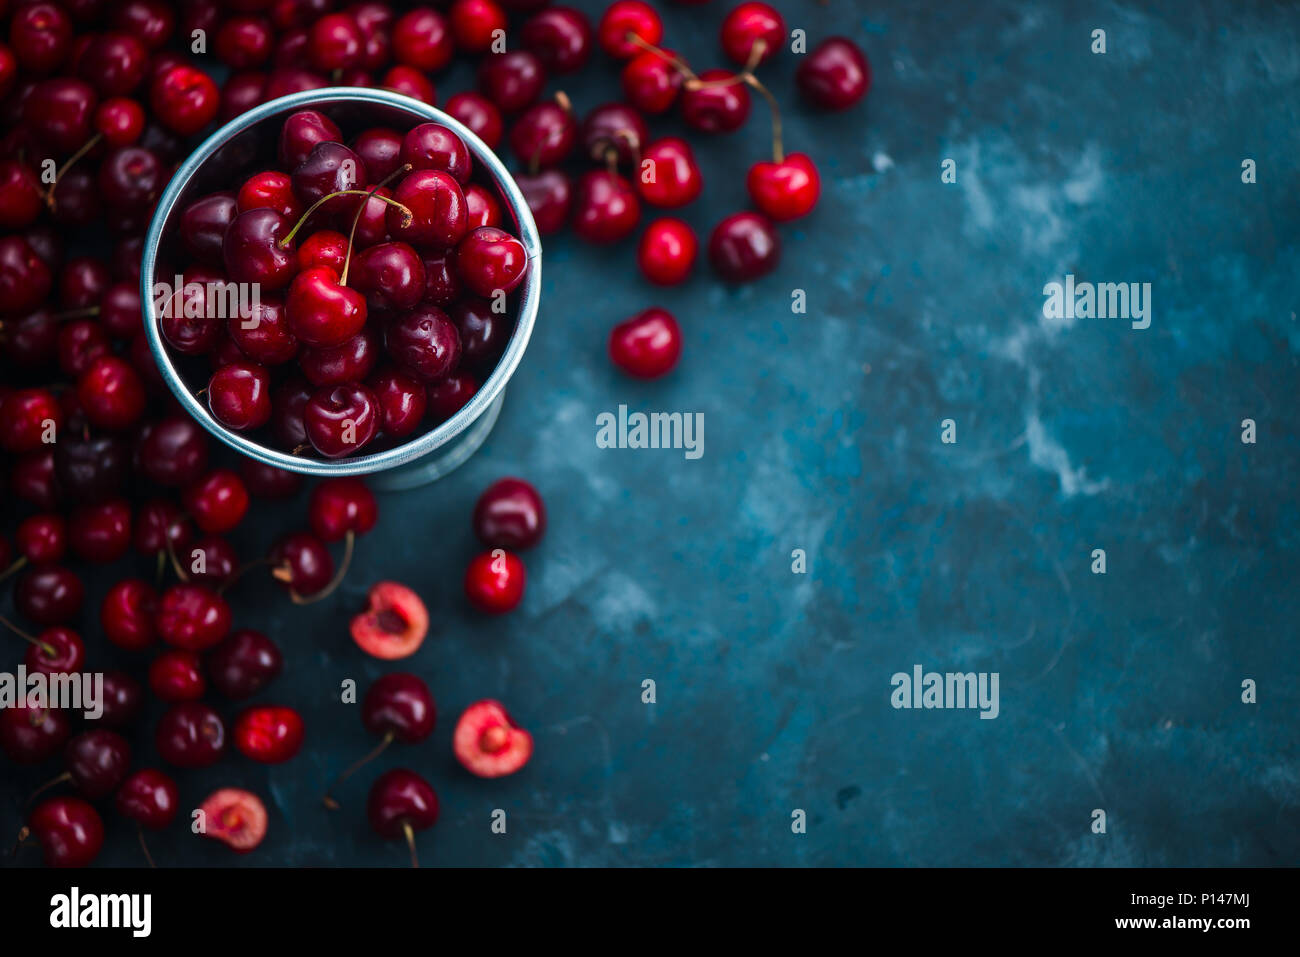 Cherries with a small metal bucket on a grey concrete background, summer berries concept with copy space. Neutral color tones still life - Stock Image